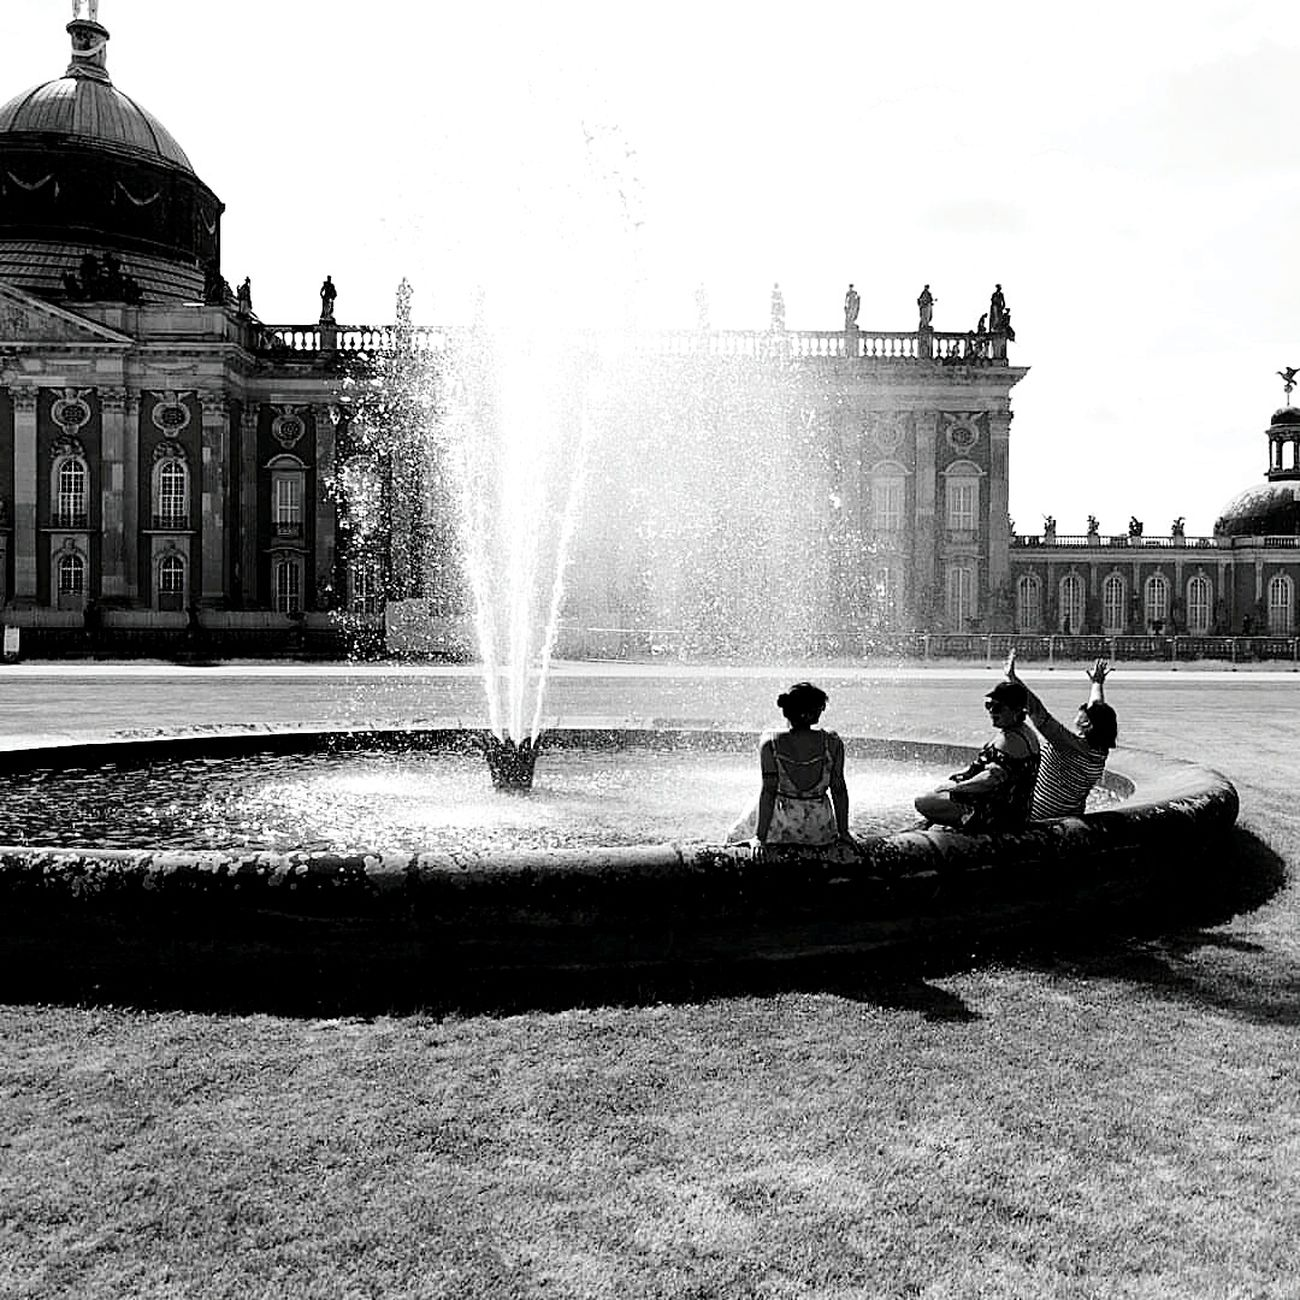 Refreshing the feet Potsdam Neues Palais Palace Rococo Prussia Park Fountain